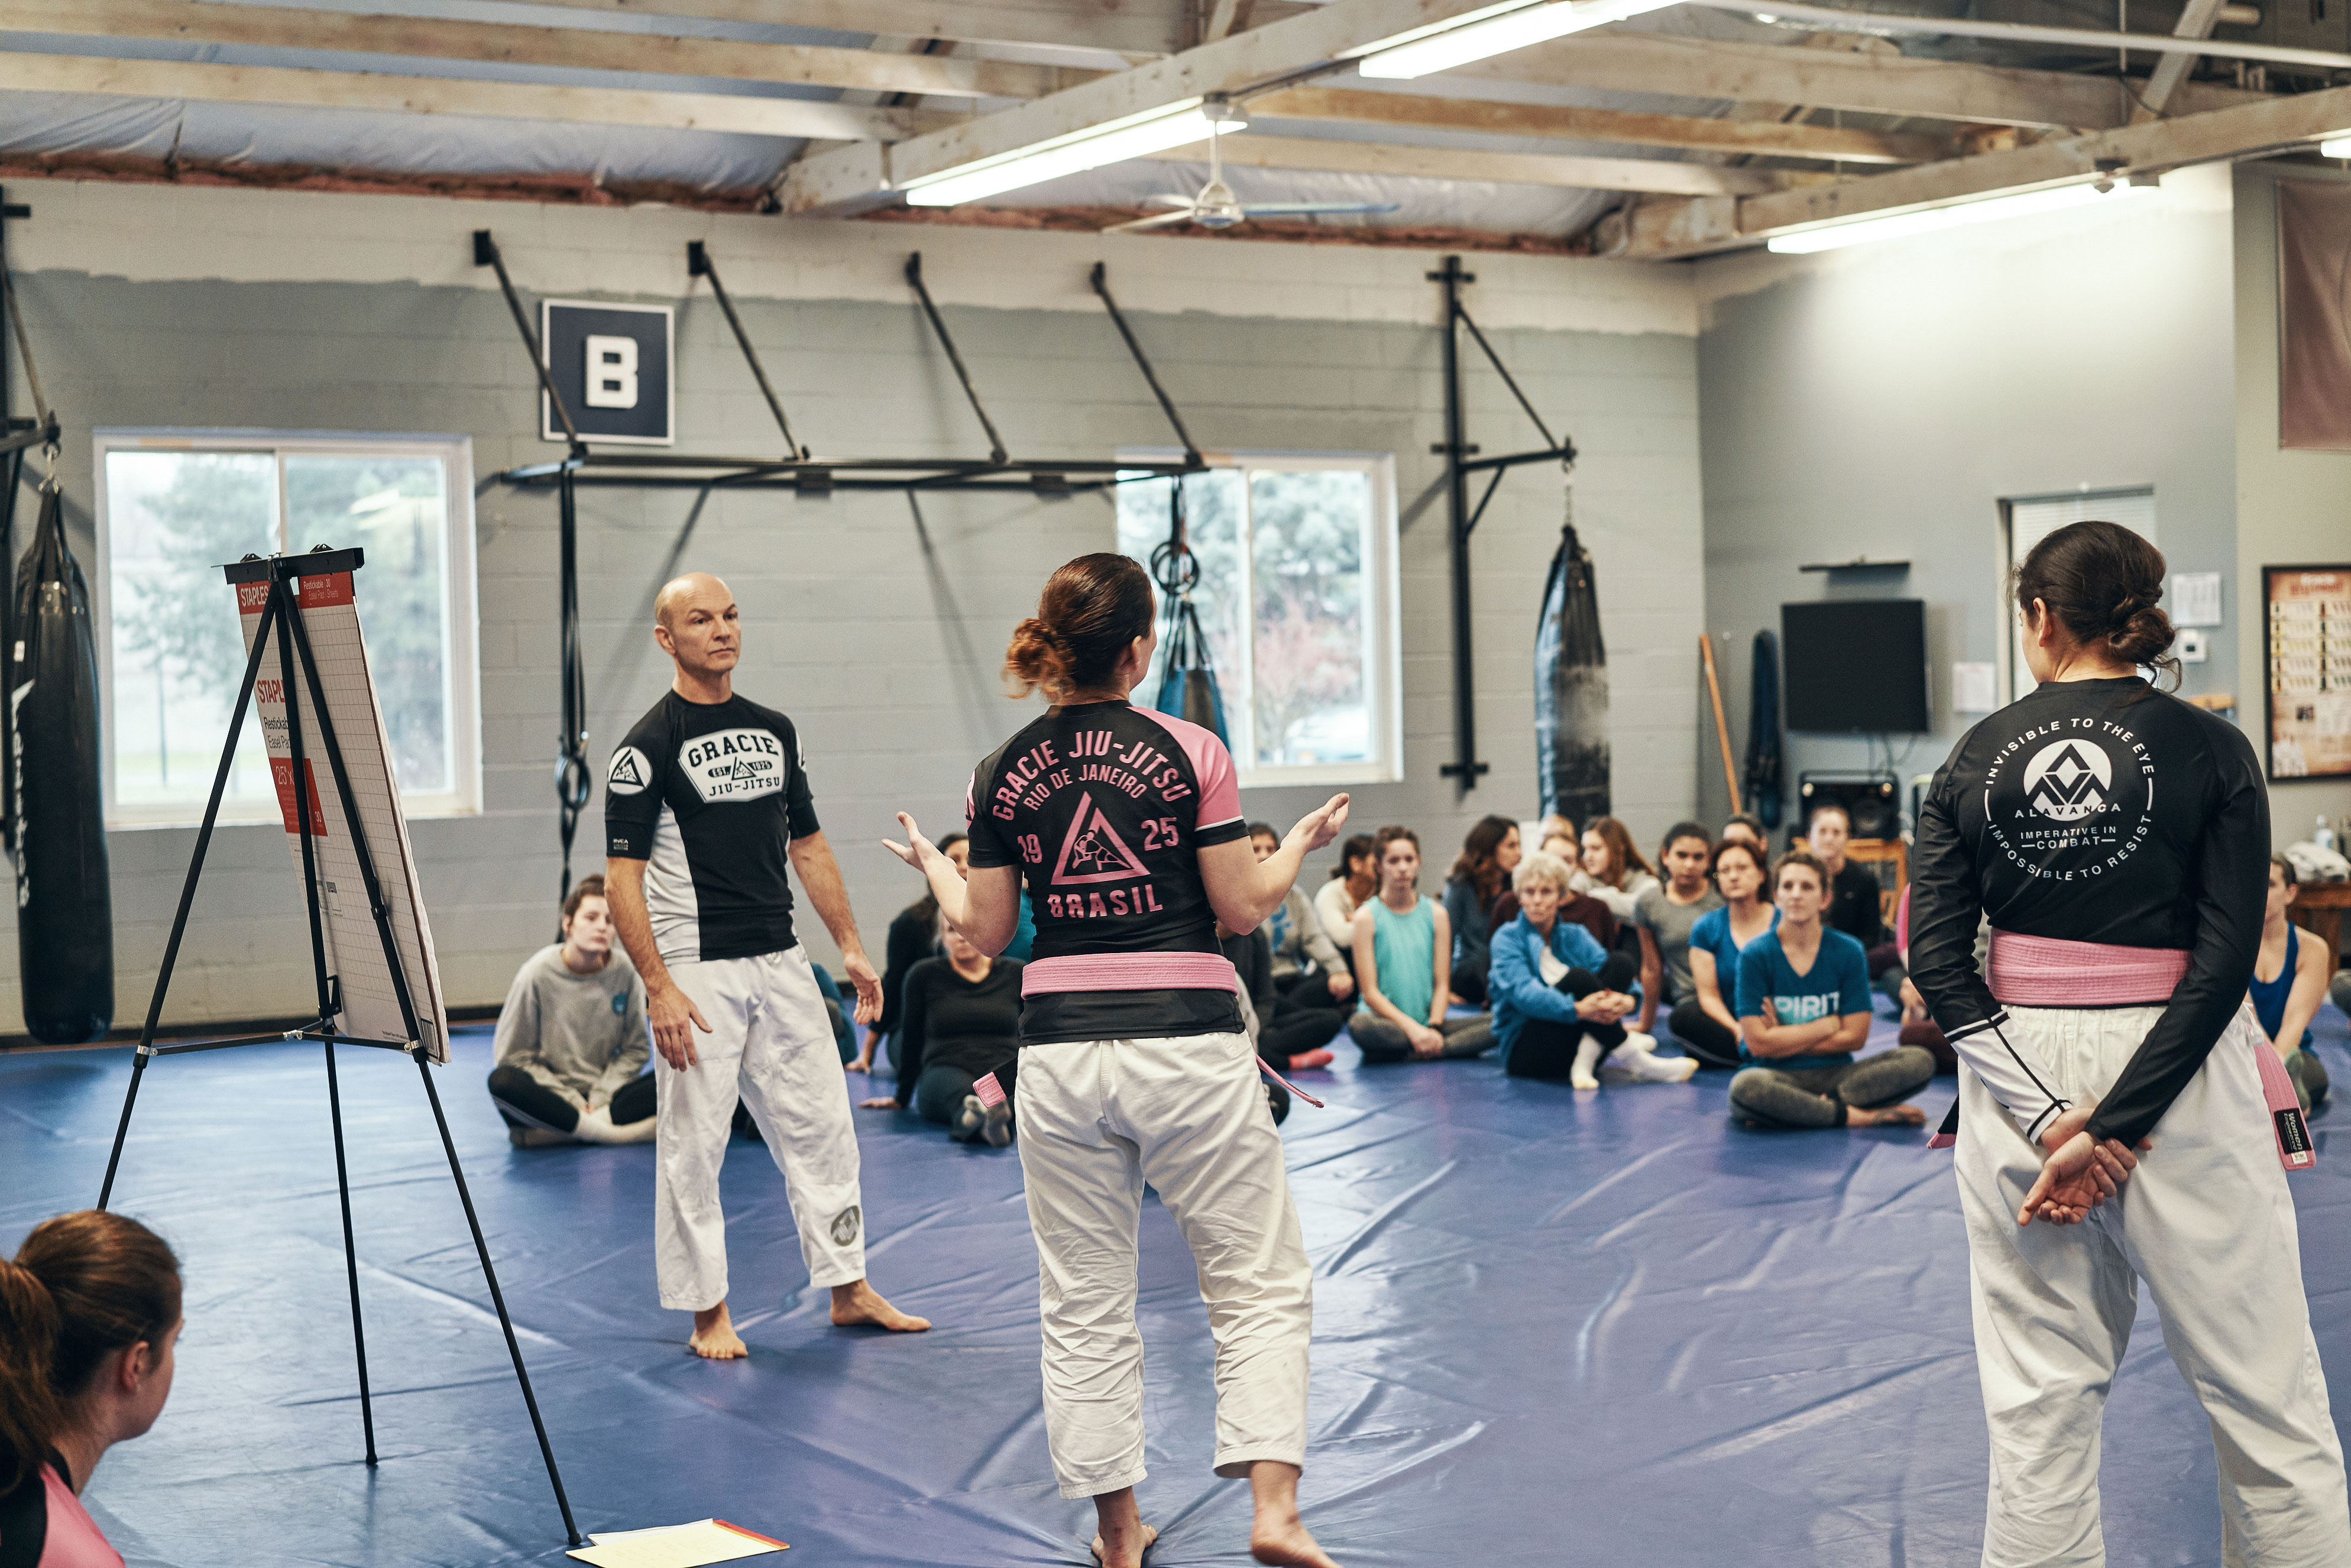 Instructors teaching womens self-defense classes near Rochester, NY